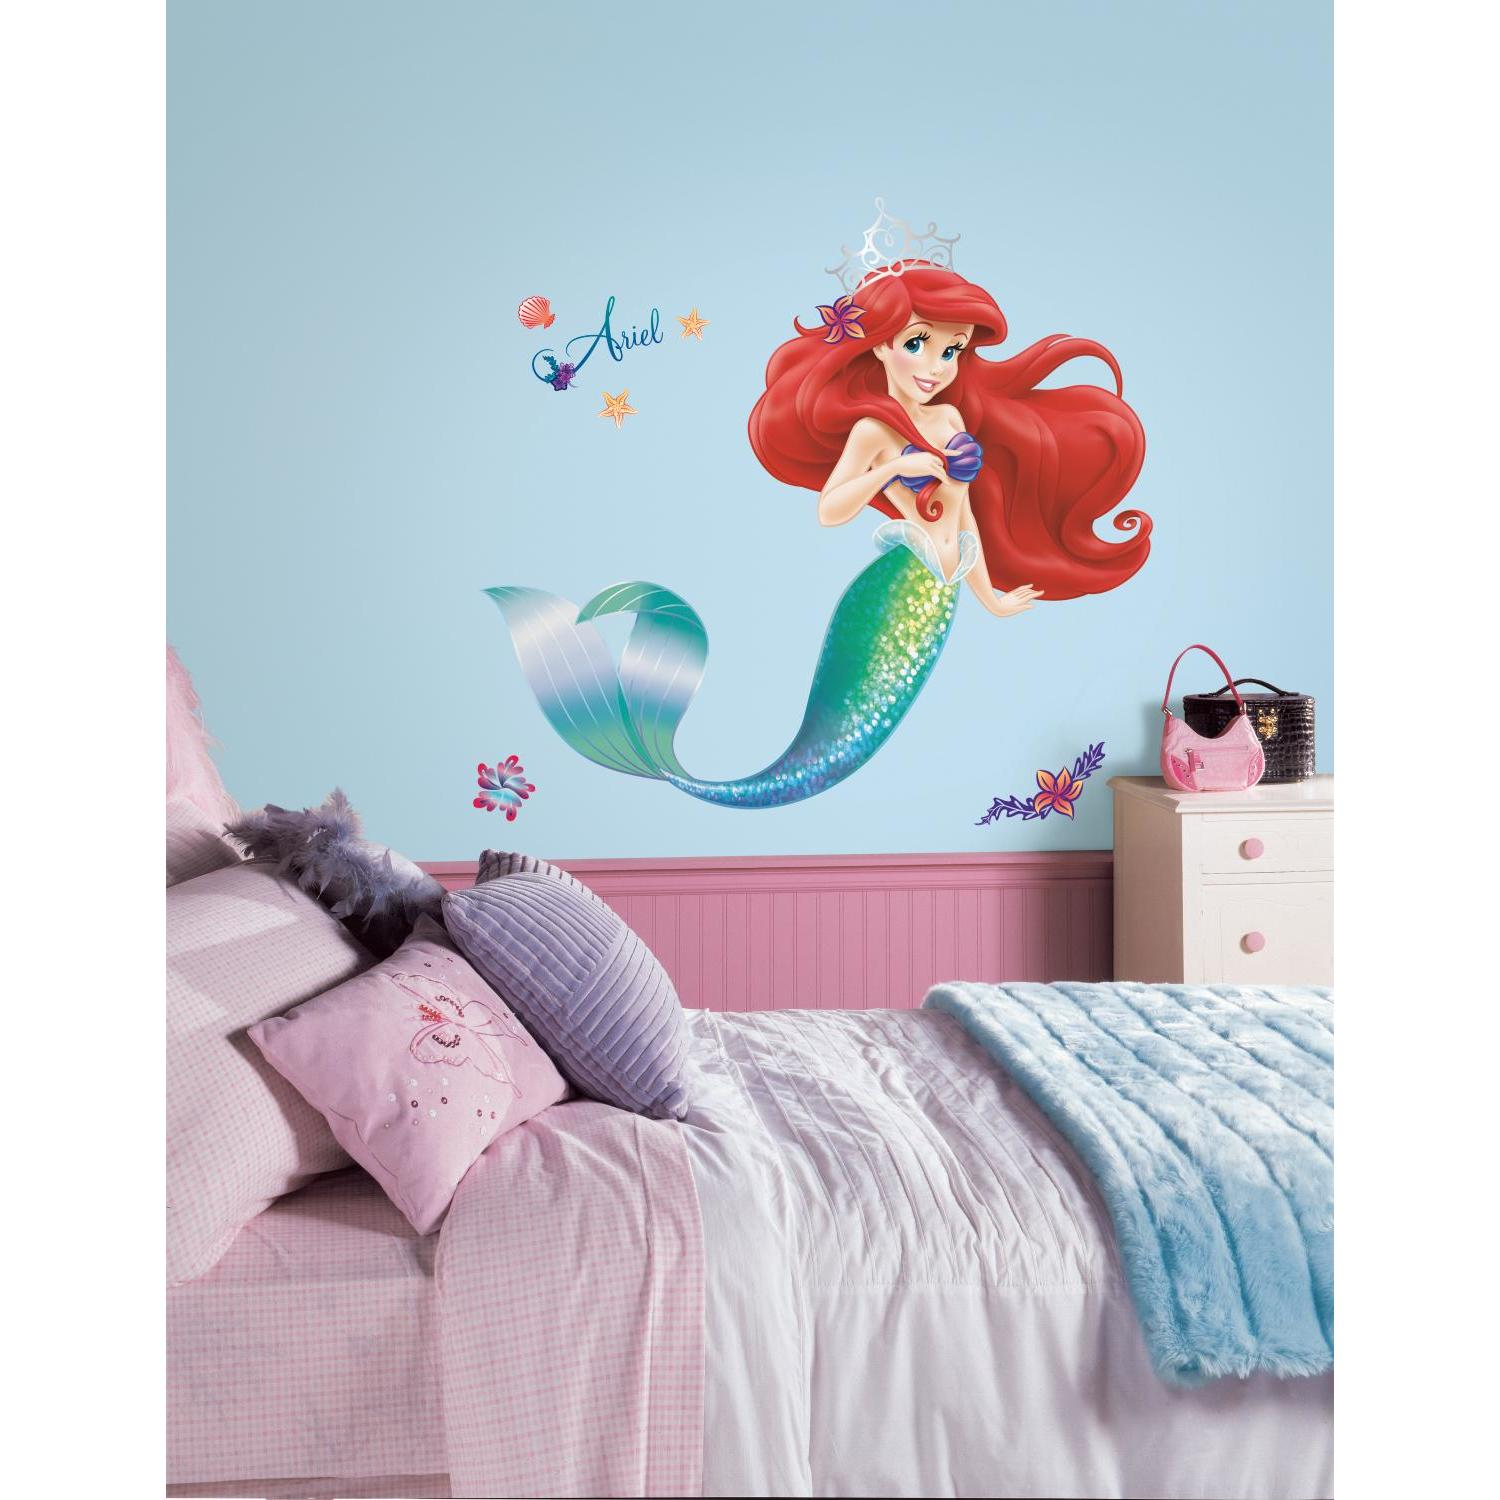 ARIEL The LITTLE MERMAID wall stickers Disney Princess MURAL 21 wall decals Girls Room Decpr